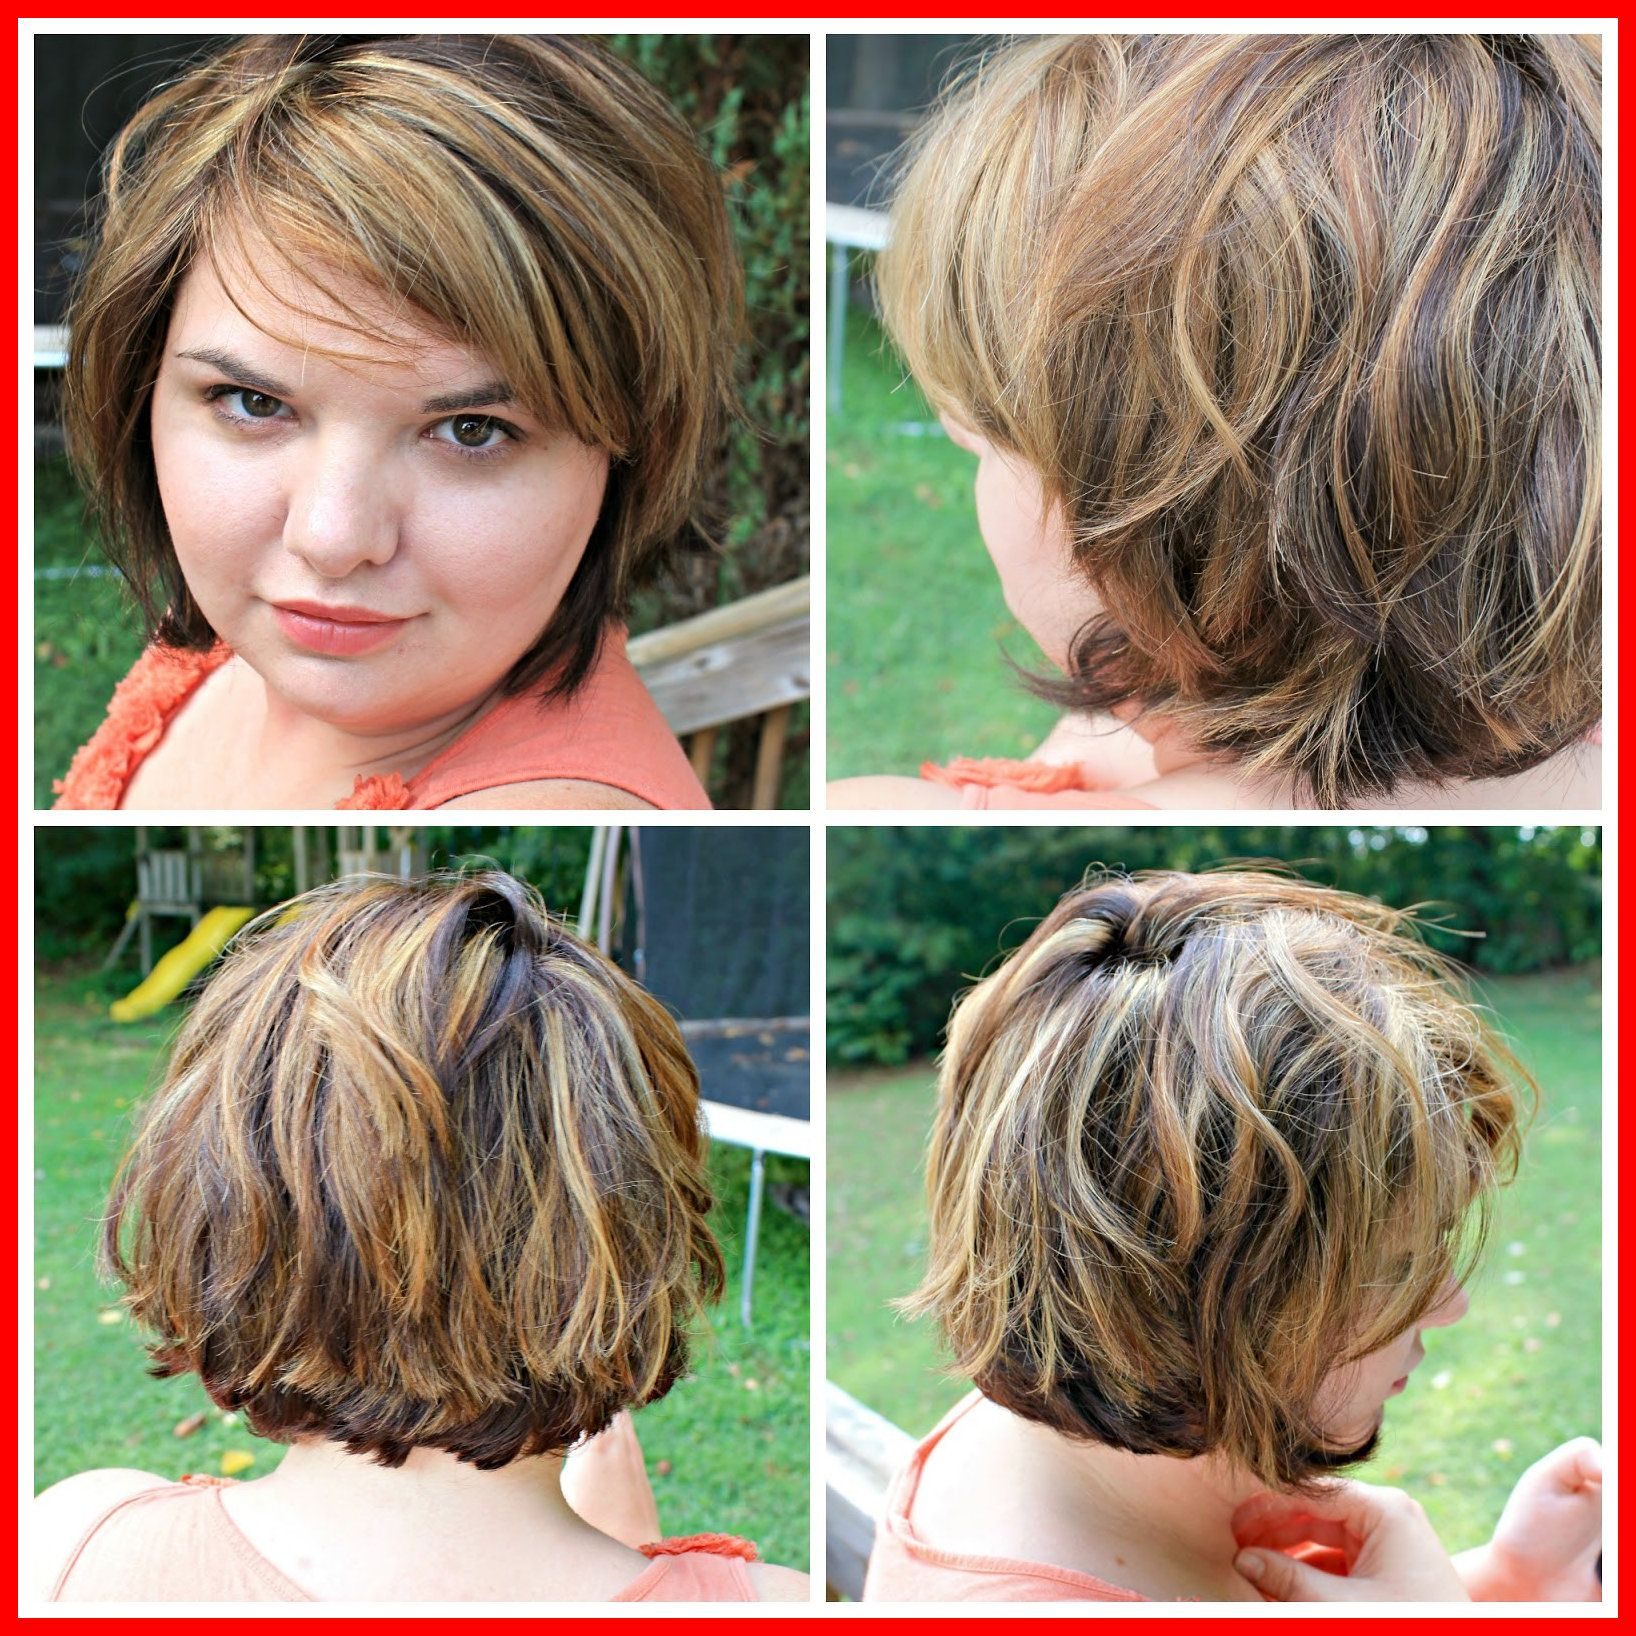 Hairstyles For Plus Size Women 2019 Plus Size Models With Short Hair Check These Ou Short Hair Plus Size Short Hair Styles For Round Faces Short Hair Styles